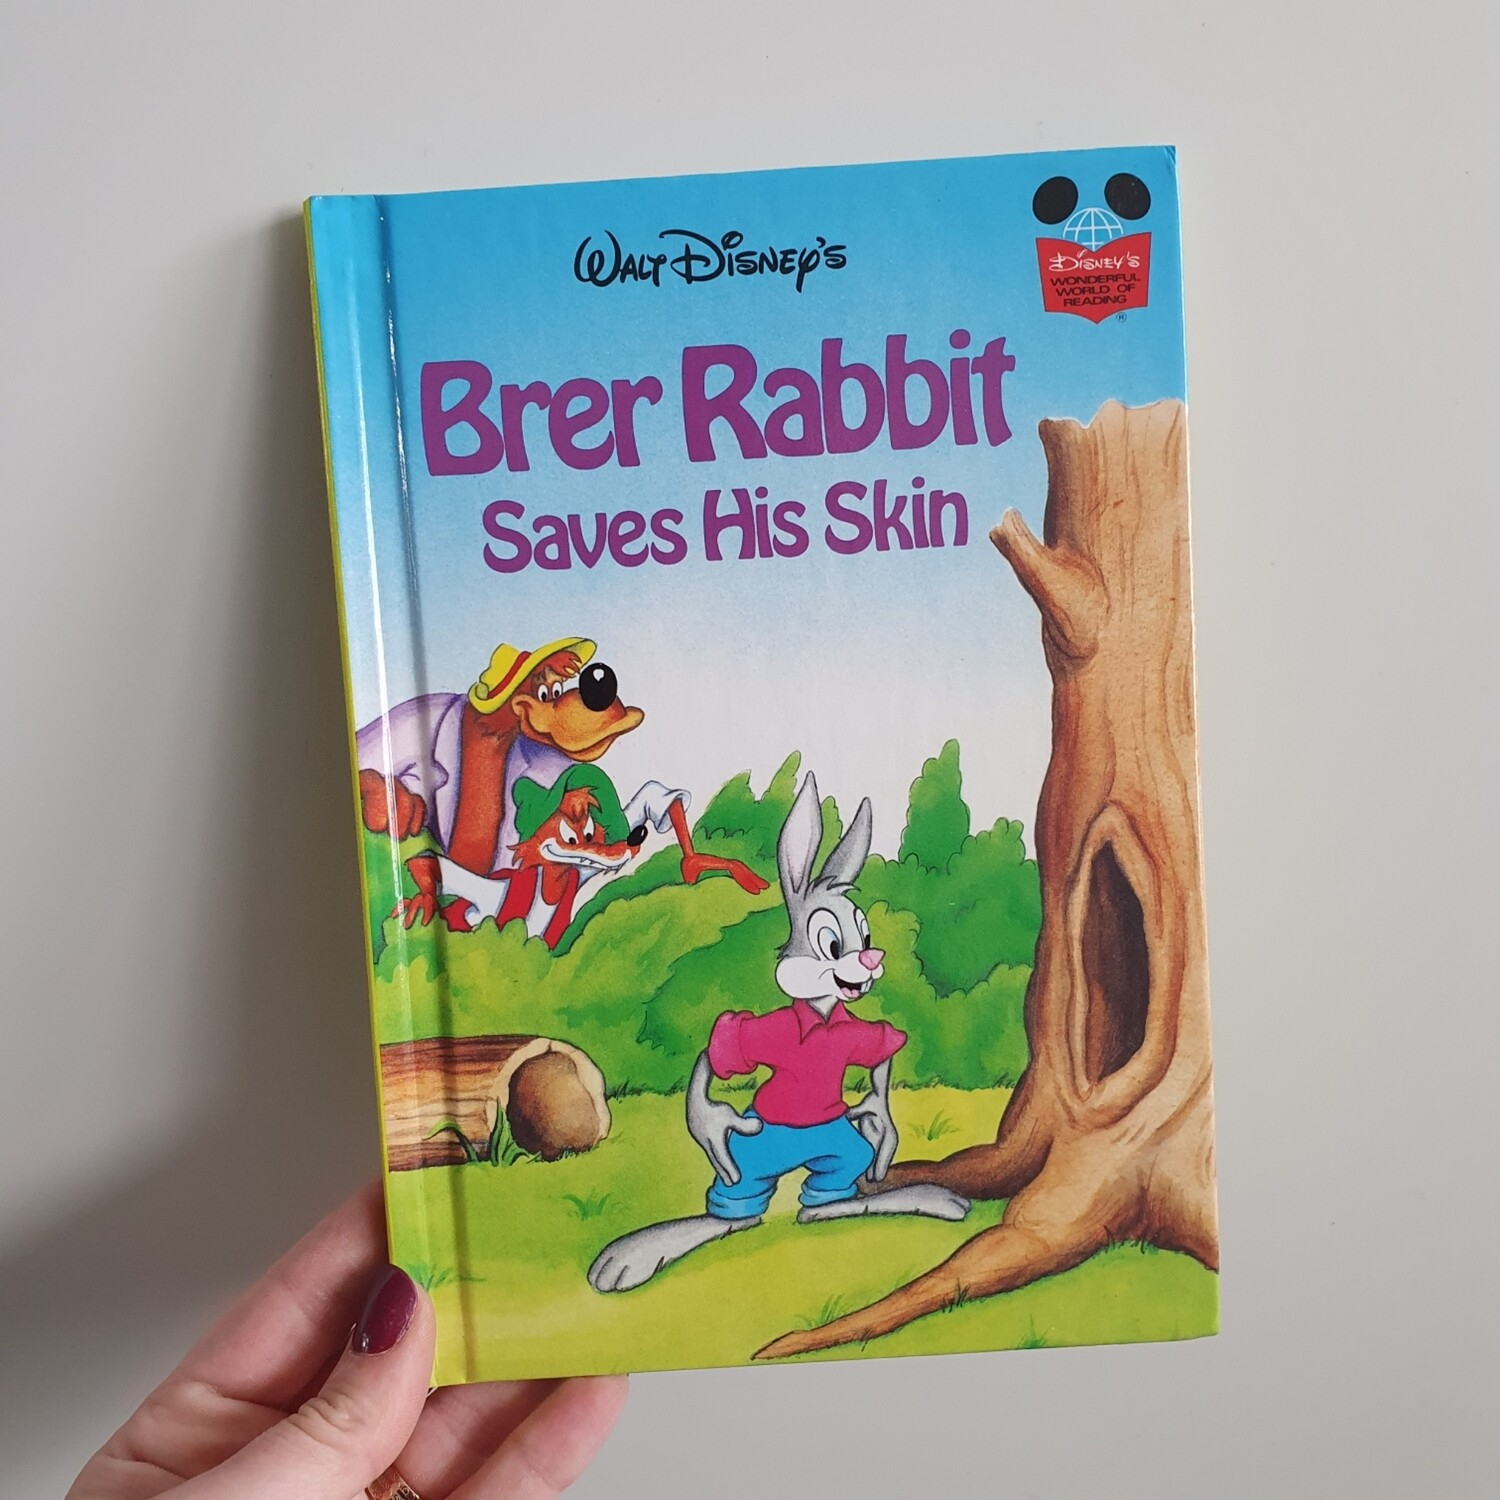 Brer Rabbit Notebook - saves his skin  - from Song of the South